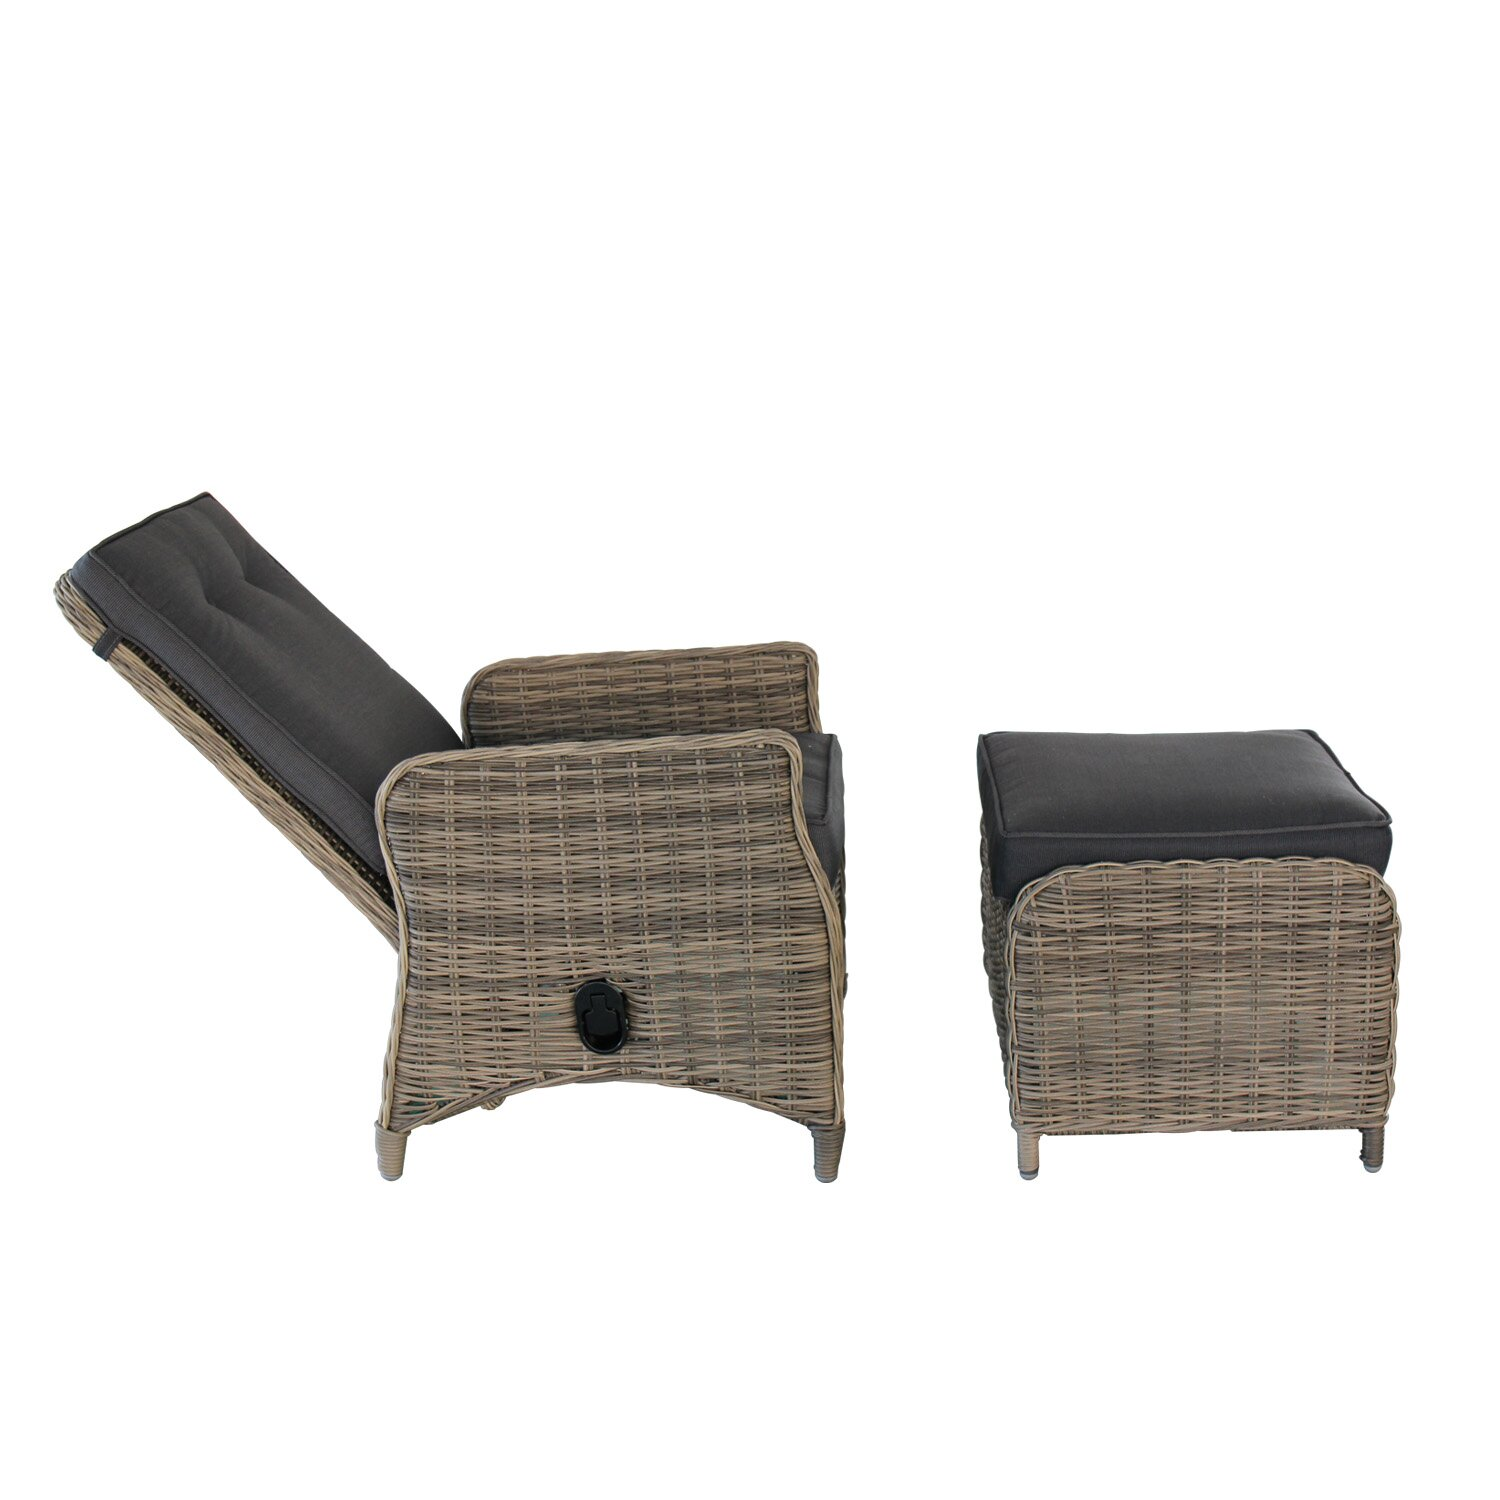 Rattan Dining Room Chairs Magari Modern Contemporary Outdoor Pool Patio Furniture